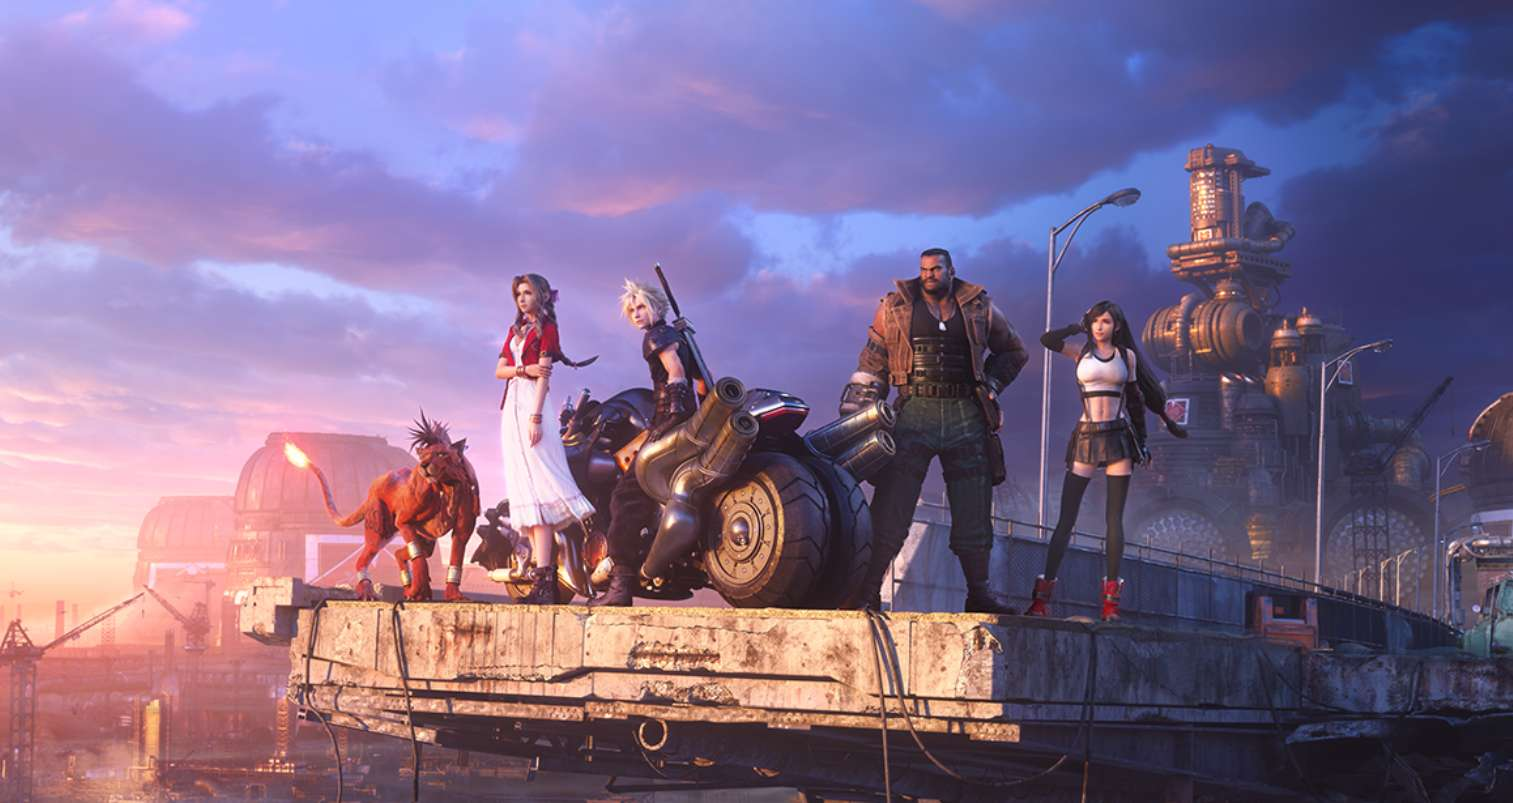 Final Fantasy 7 Remake Composers Reflect On The Challenge Of Adapting The Original Game's Classic Score